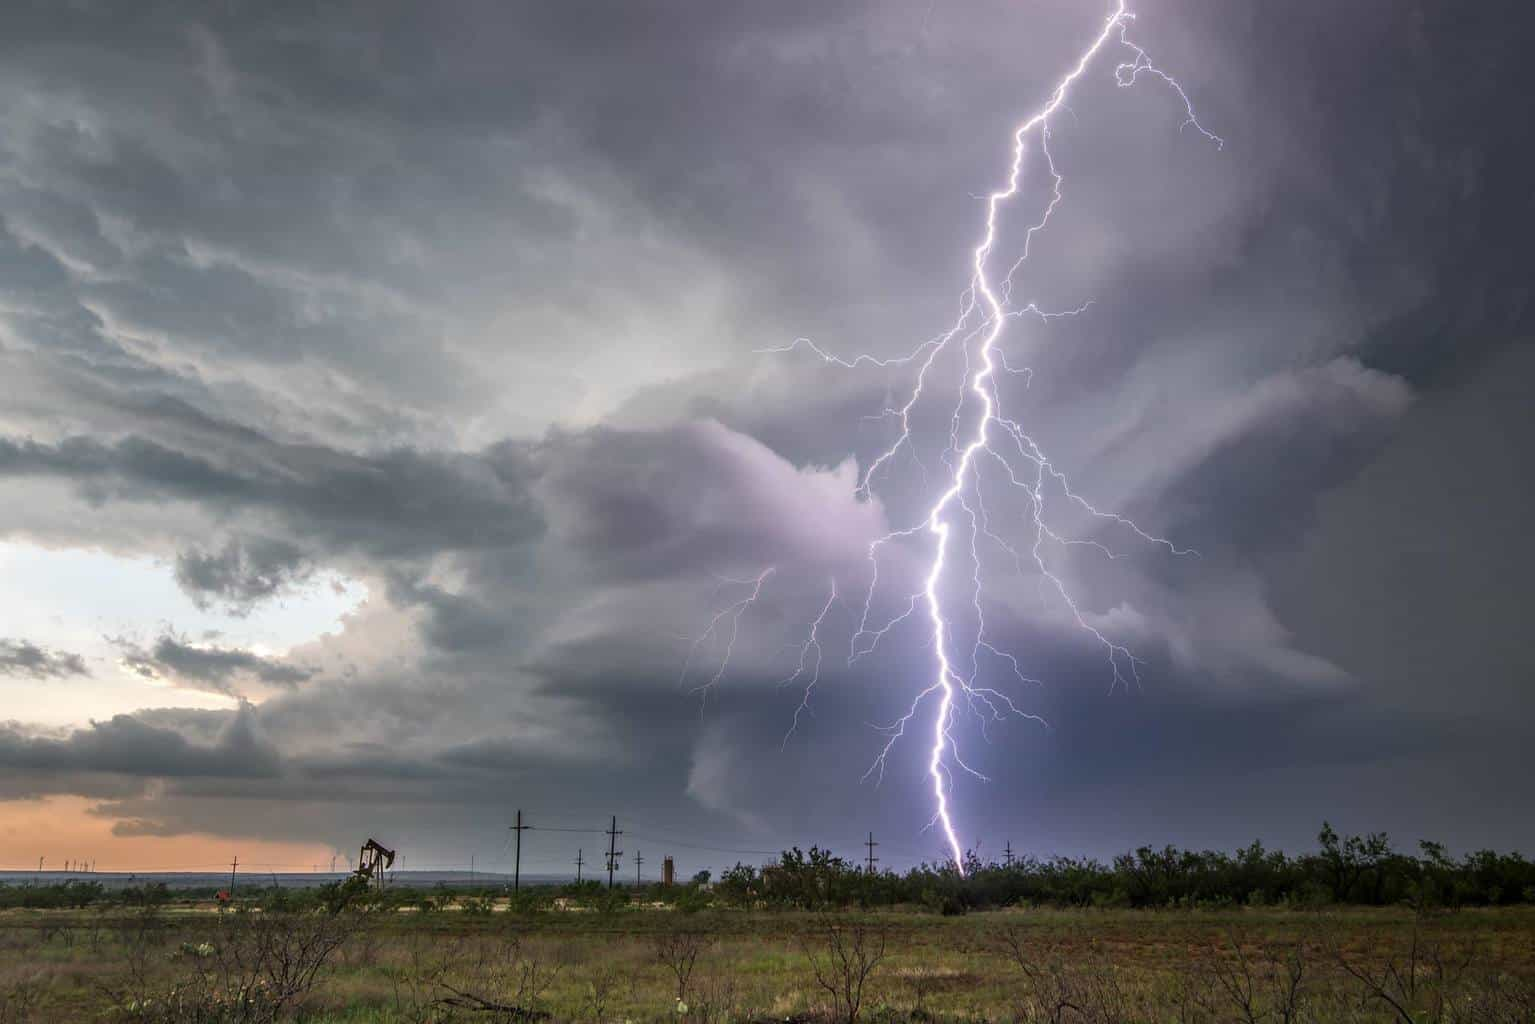 Yesterday up near Big Springs, Tx... Incredible lightning display to the point of being scary.... If your chasing this system take this lightning seriously. I had a wake up call yesterday.